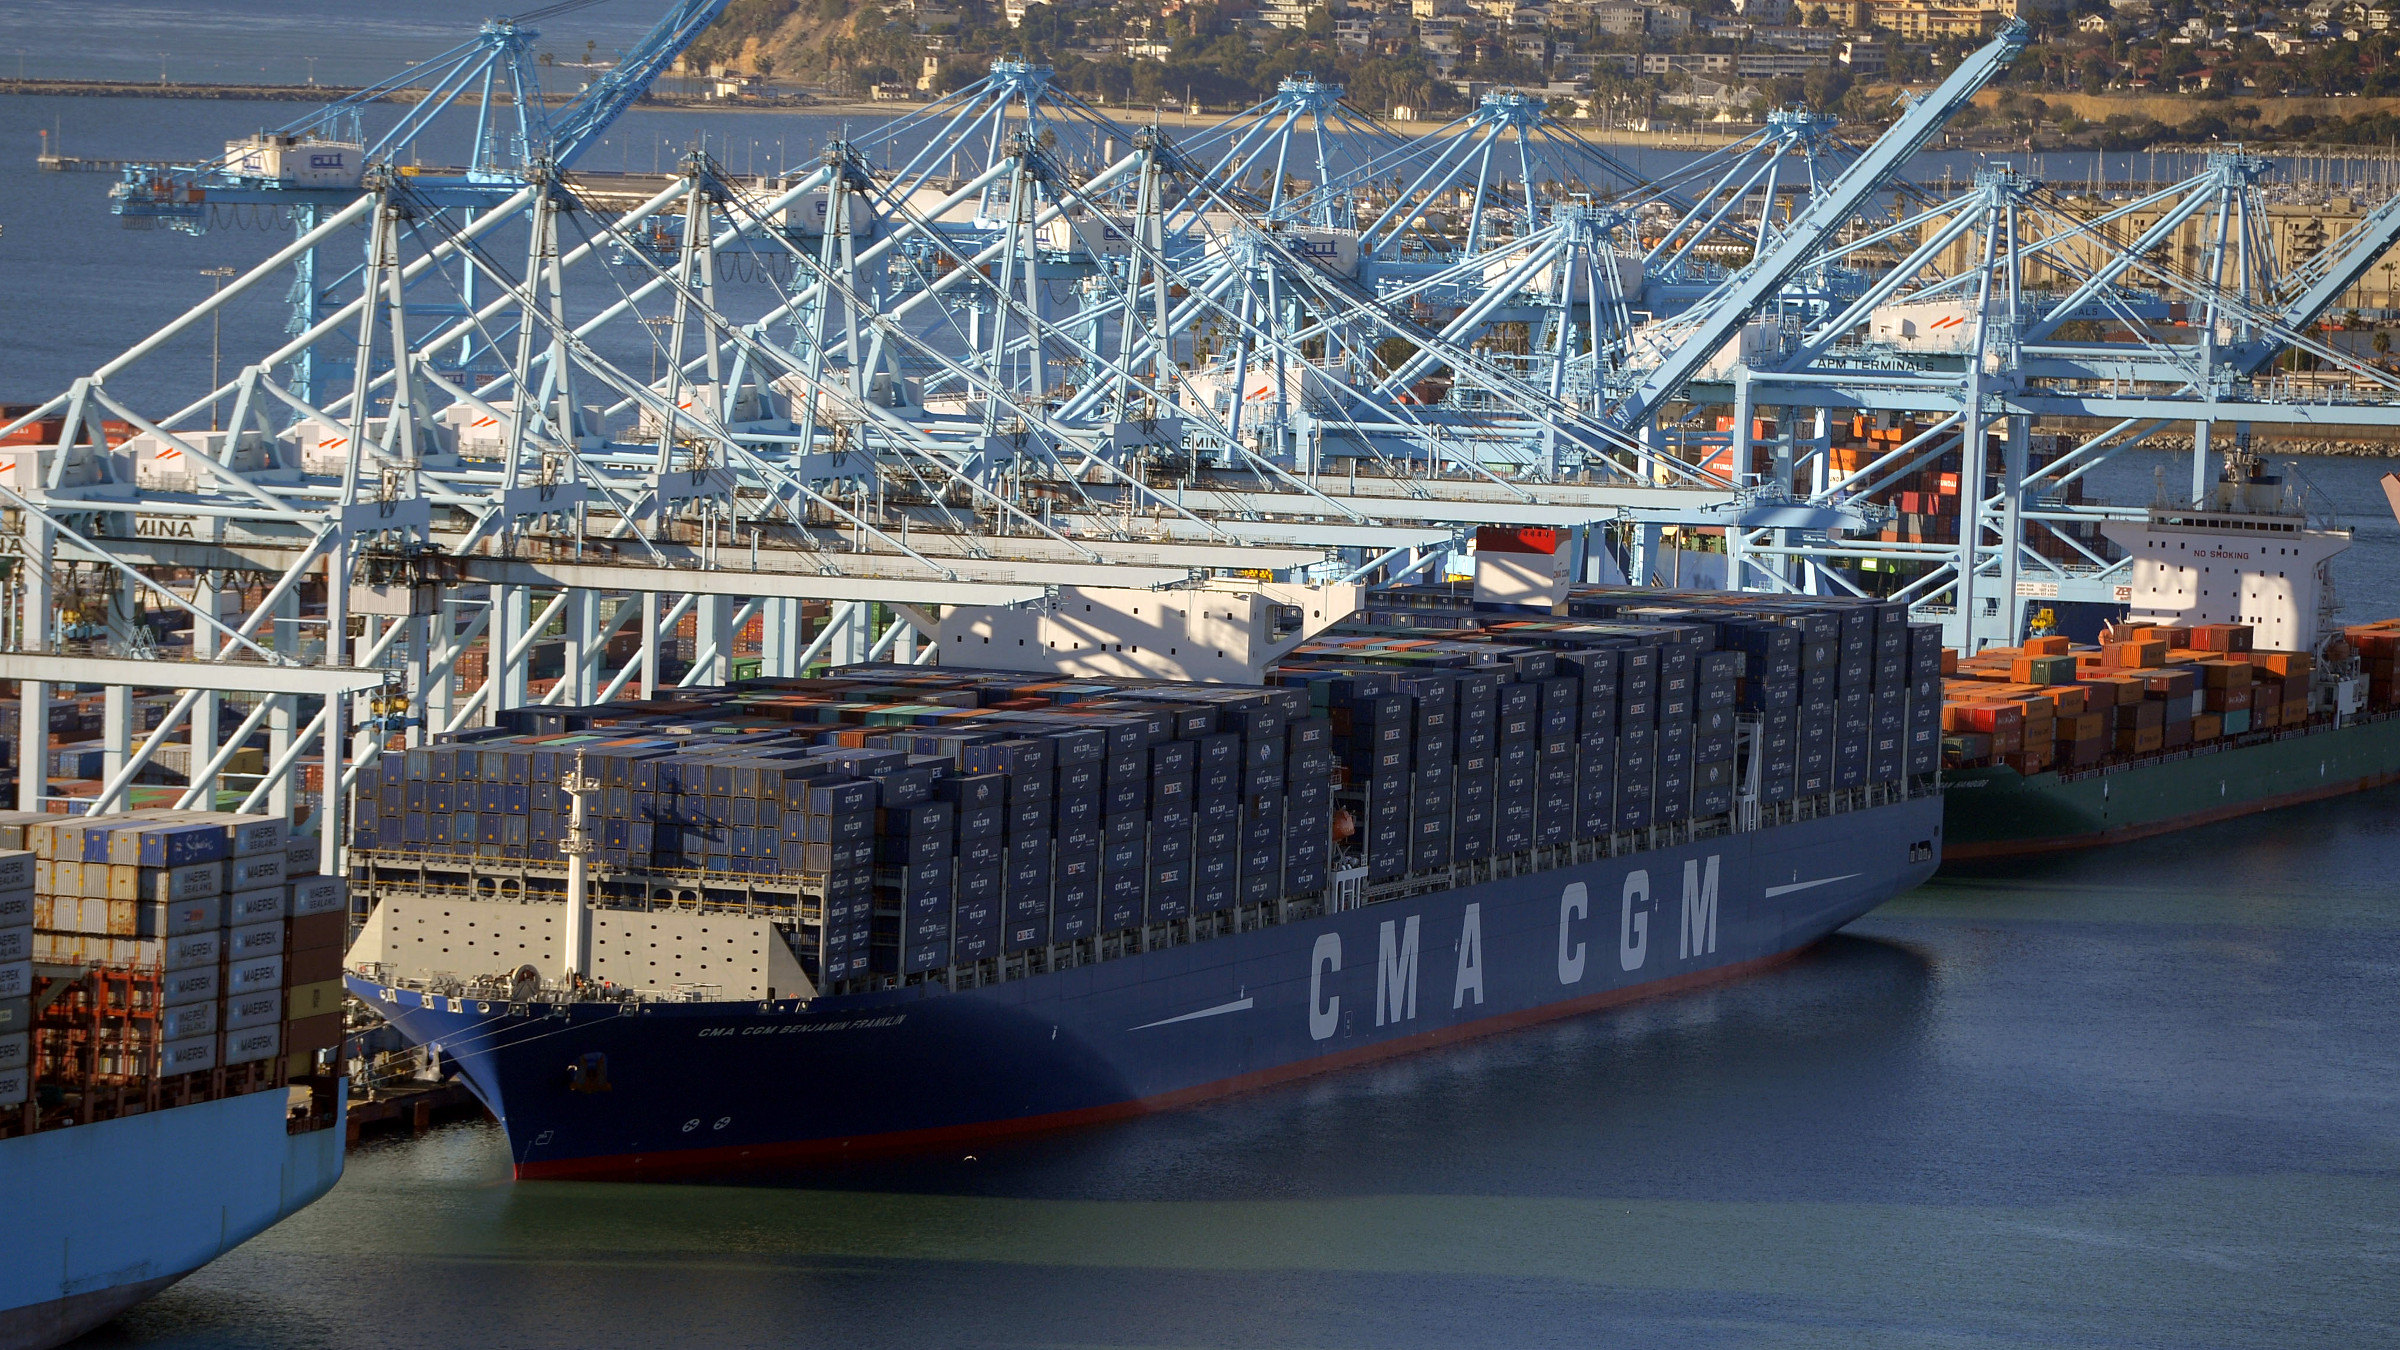 The largest container ship to ever make port in North America unloads its cargo in the Port of Los Angeles in San Pedro, Calif., on Saturday, Dec. 26, 2015. After making its maiden voyage from China, where it was built, the CMA CGM Benjamin Franklin arrived before dawn with its cargo. The ship can carry 18,000 twenty-foot equivalent units (TEUs), which is about a third more than the ships that currently dock in the Port of L.A. The vessel measures 1,300 feet long, 177 feet wide and is 197 feet tall and is staffed with a crew of 26. The giant ship is scheduled to leave Los Angeles on Wednesday, December 30 en route to Oakland before returning to China.